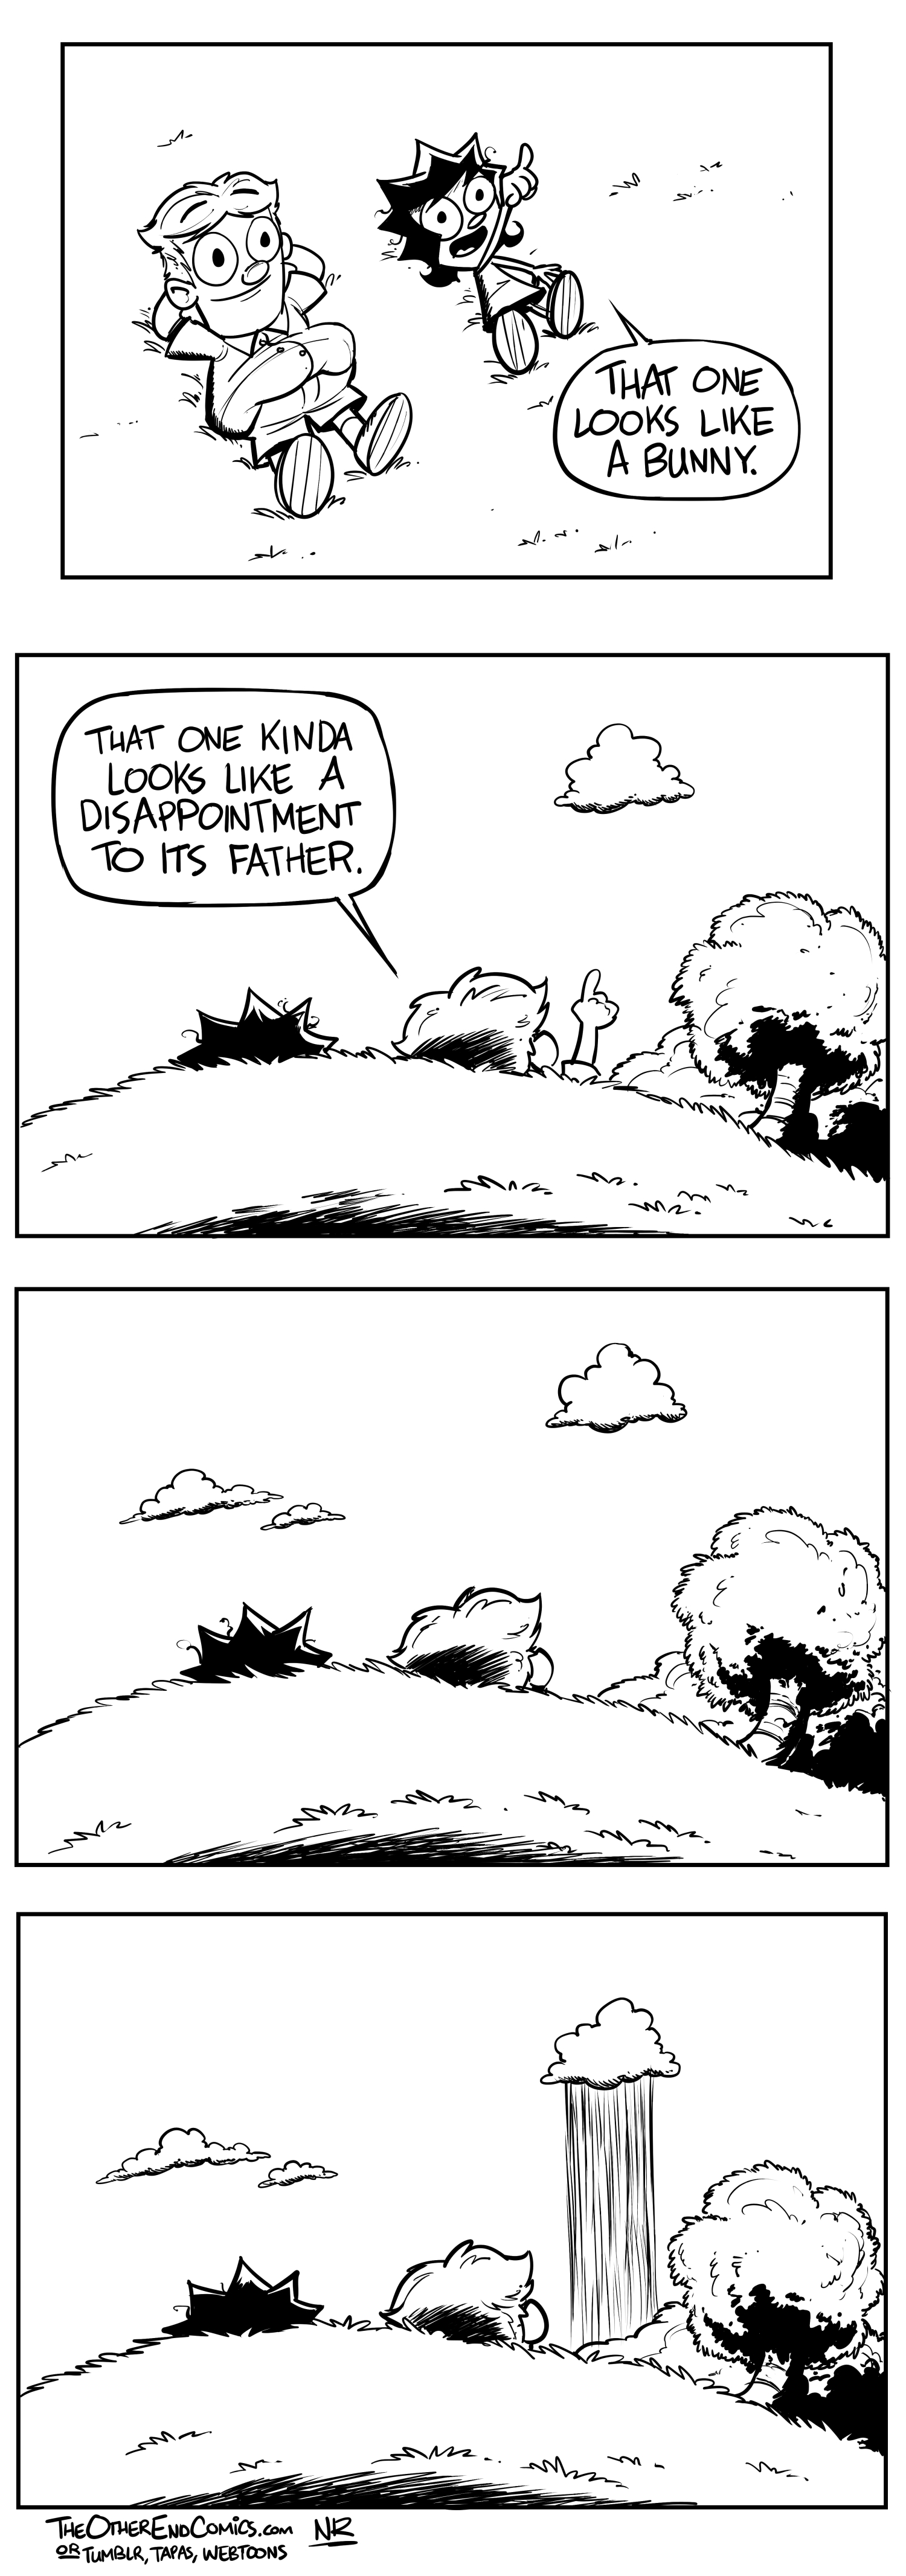 There's not even a bunny cloud in sight. This comic is so fake.